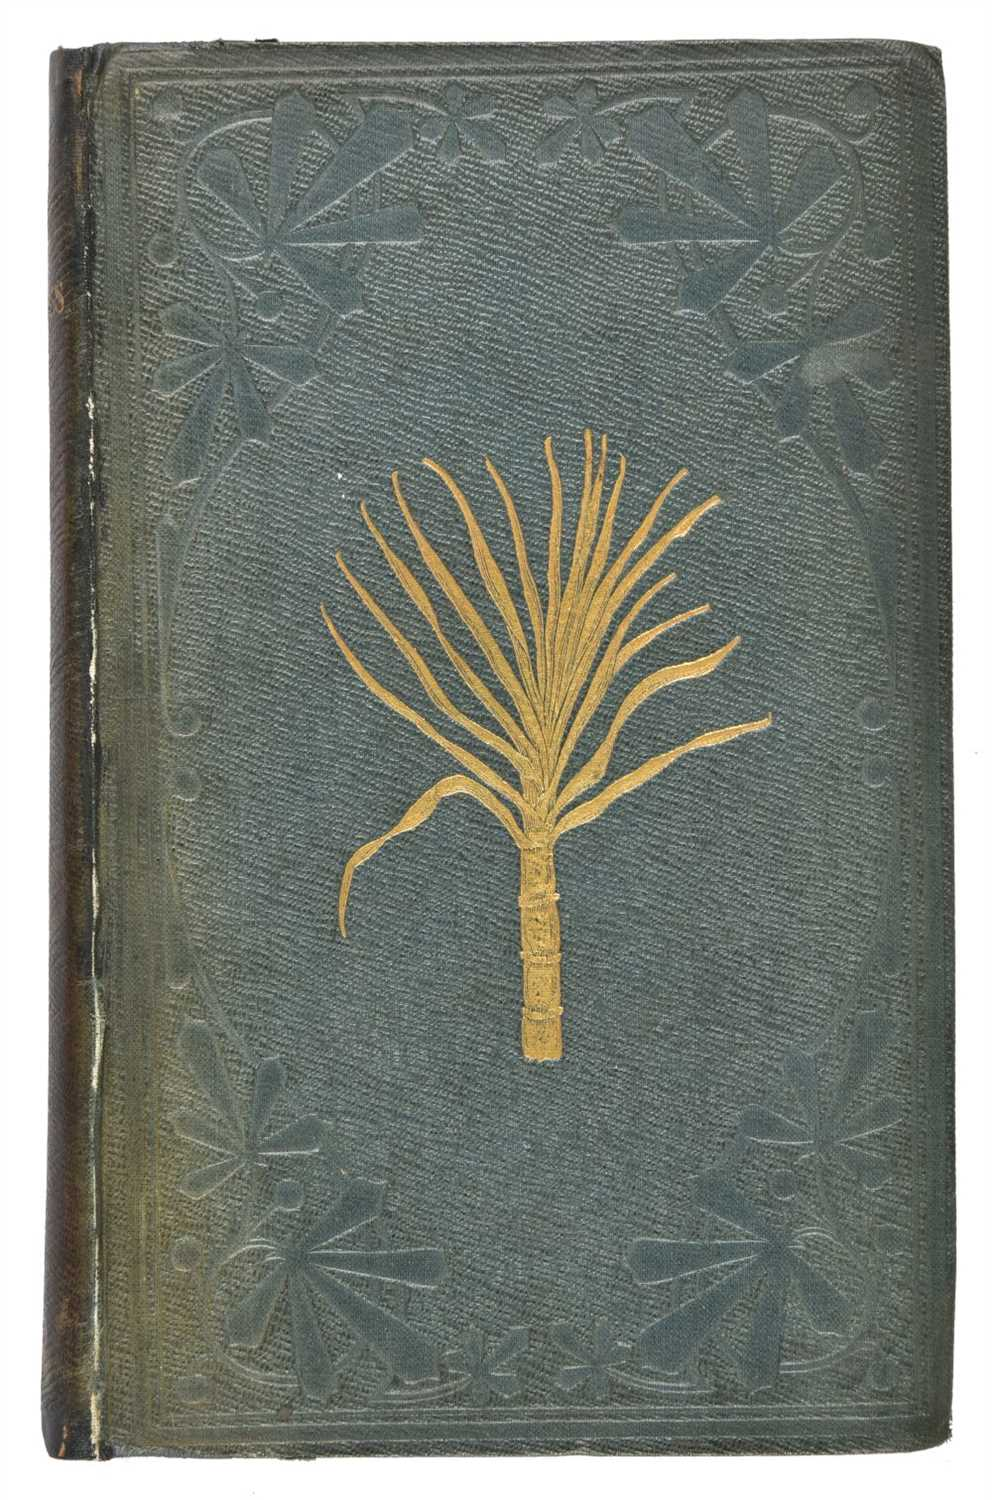 Lot 34-Reece (Robert). Hints to Young Barbados Planters, 1st edition, 1857